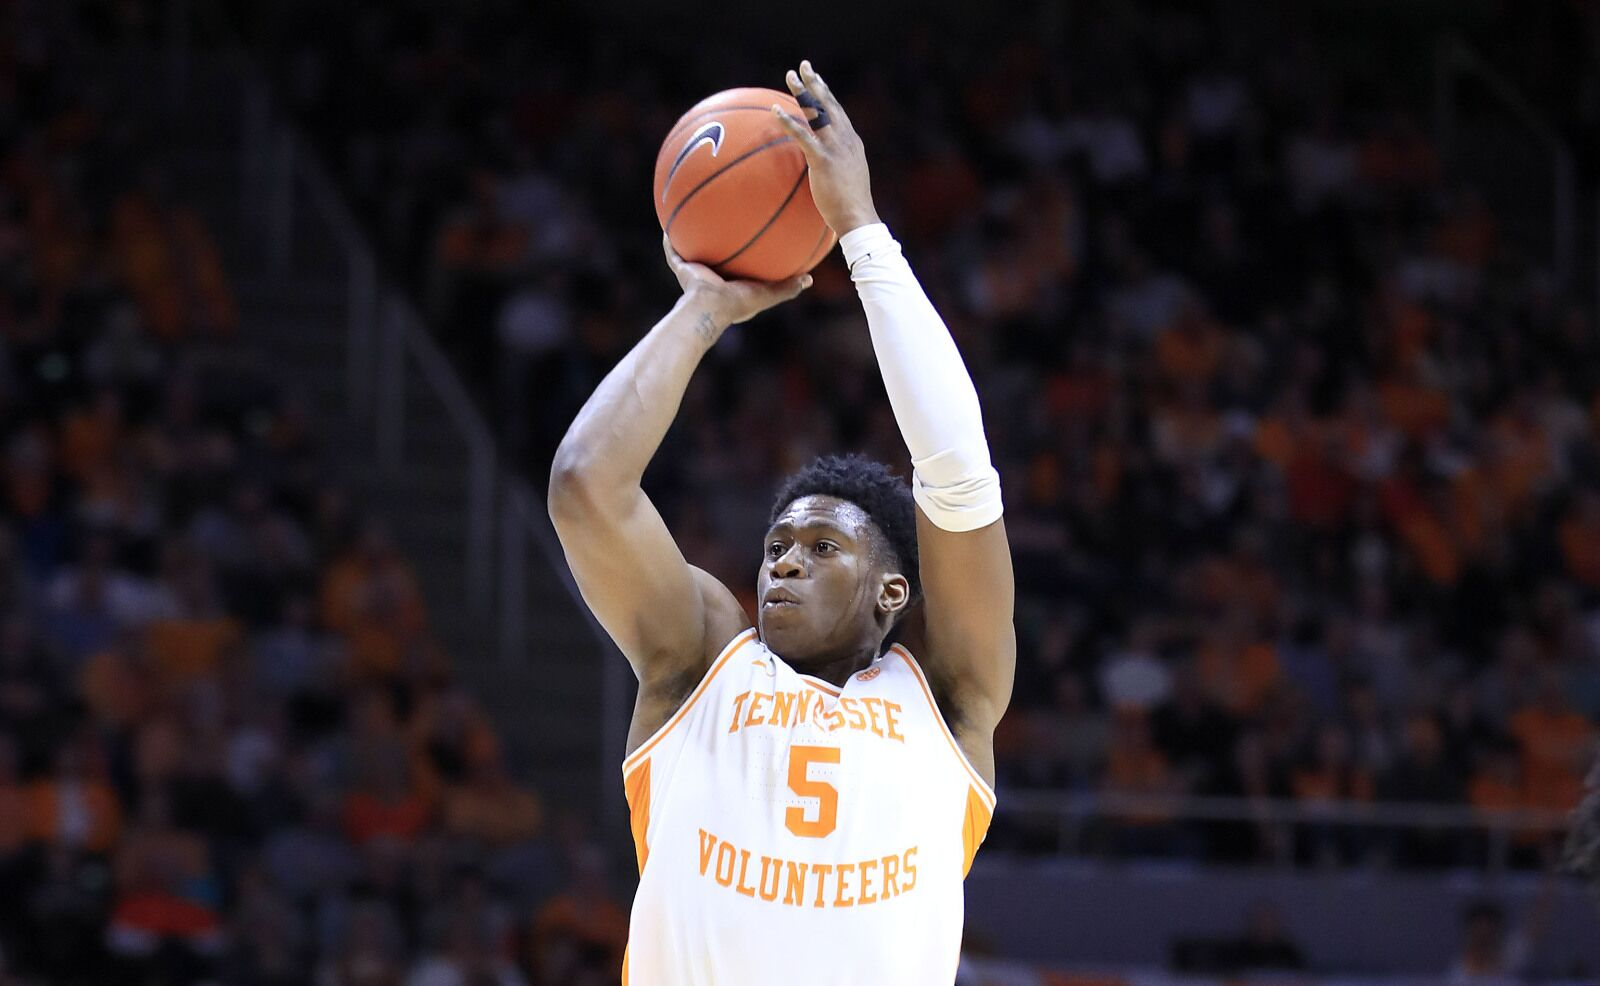 db3d0631f Tennessee basketball  Pressure is finally off Vols after South Carolina win